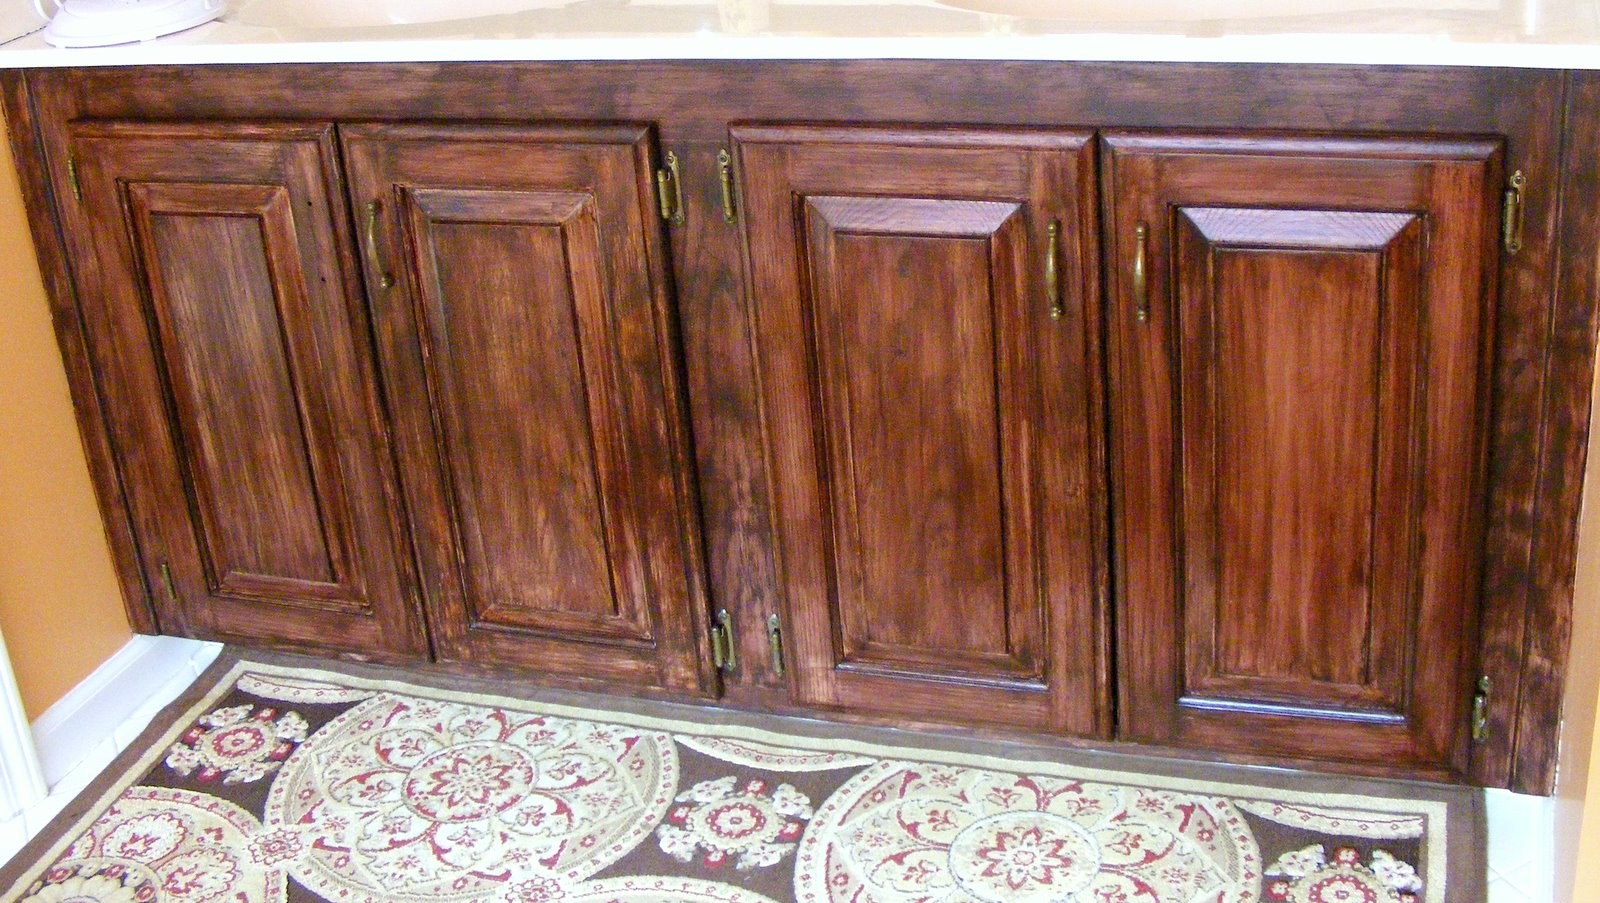 restaining-kitchen-cabinets-gel-stain-photo-14